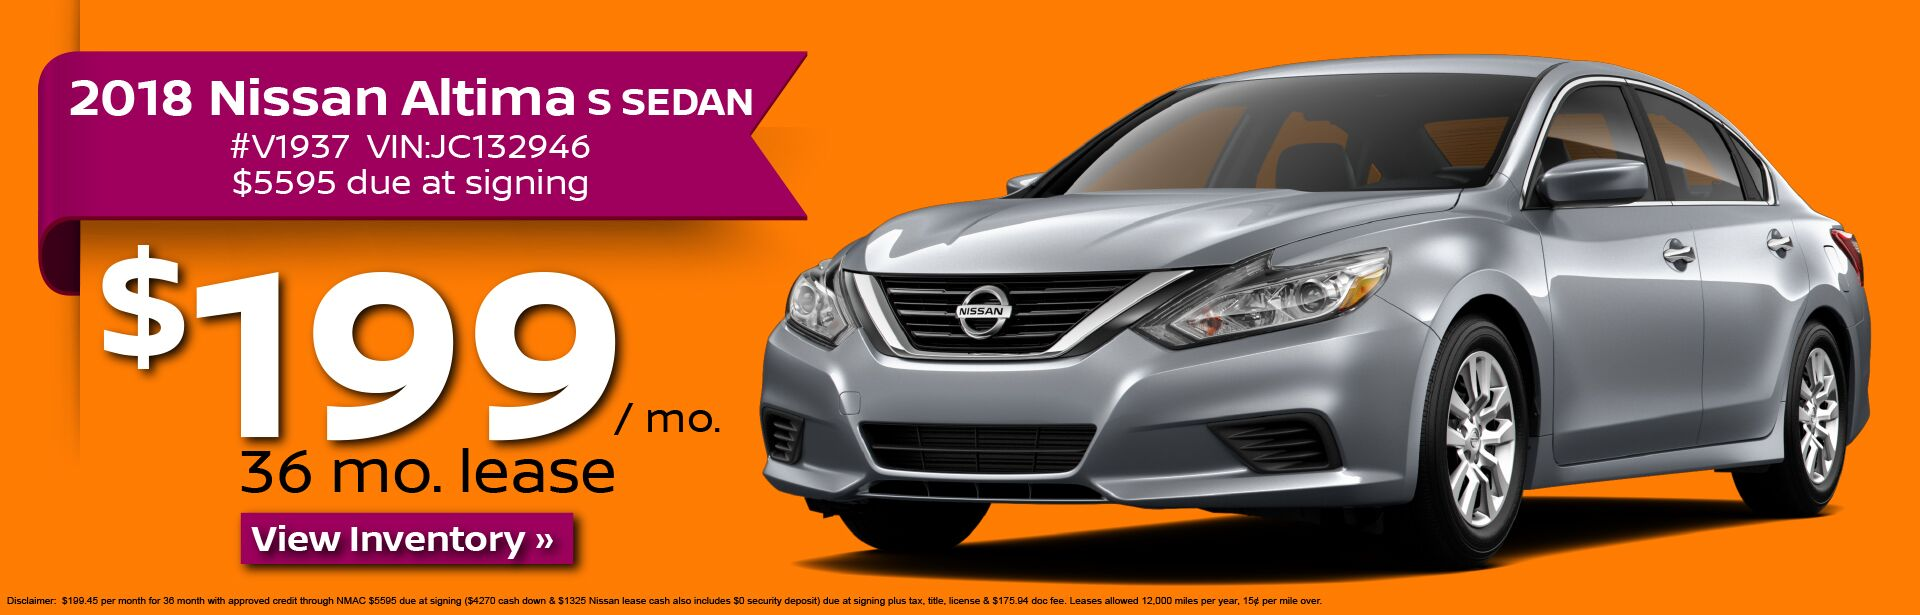 Nissan Altima Lease